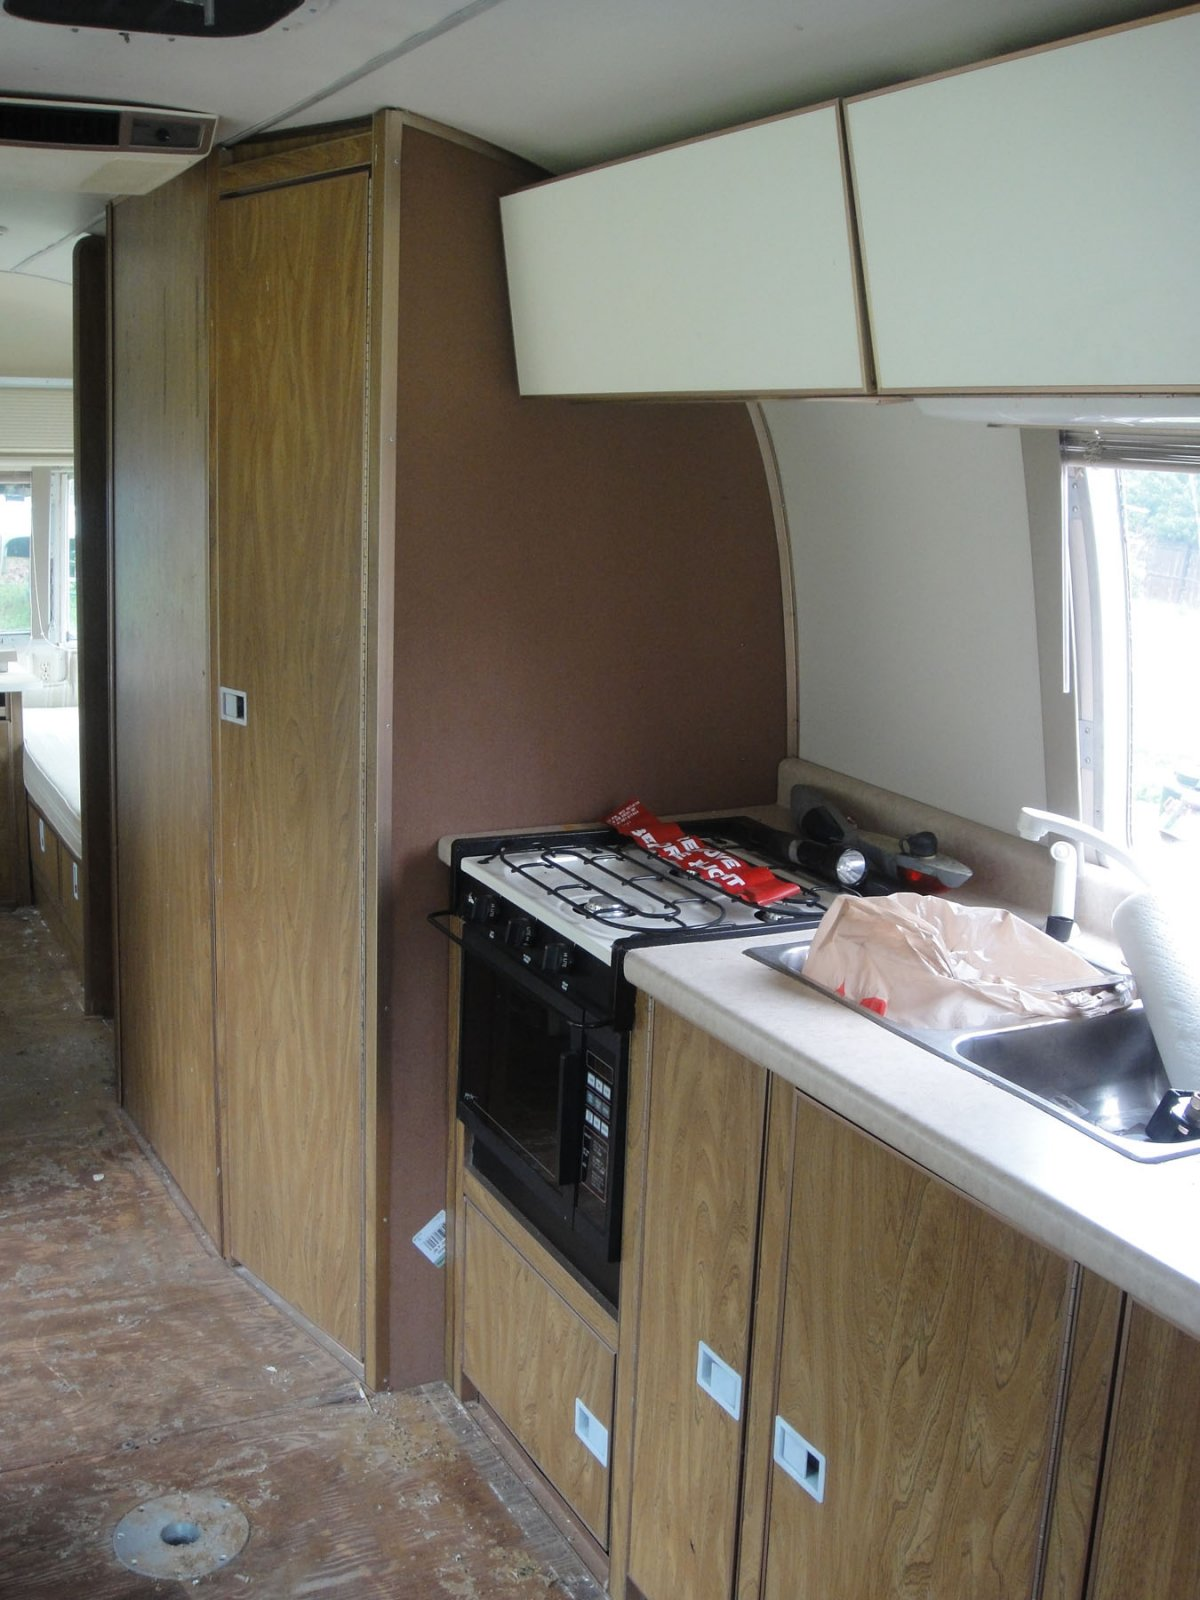 Click image for larger version  Name:interior 3-18-10 010.jpg Views:92 Size:235.2 KB ID:98617